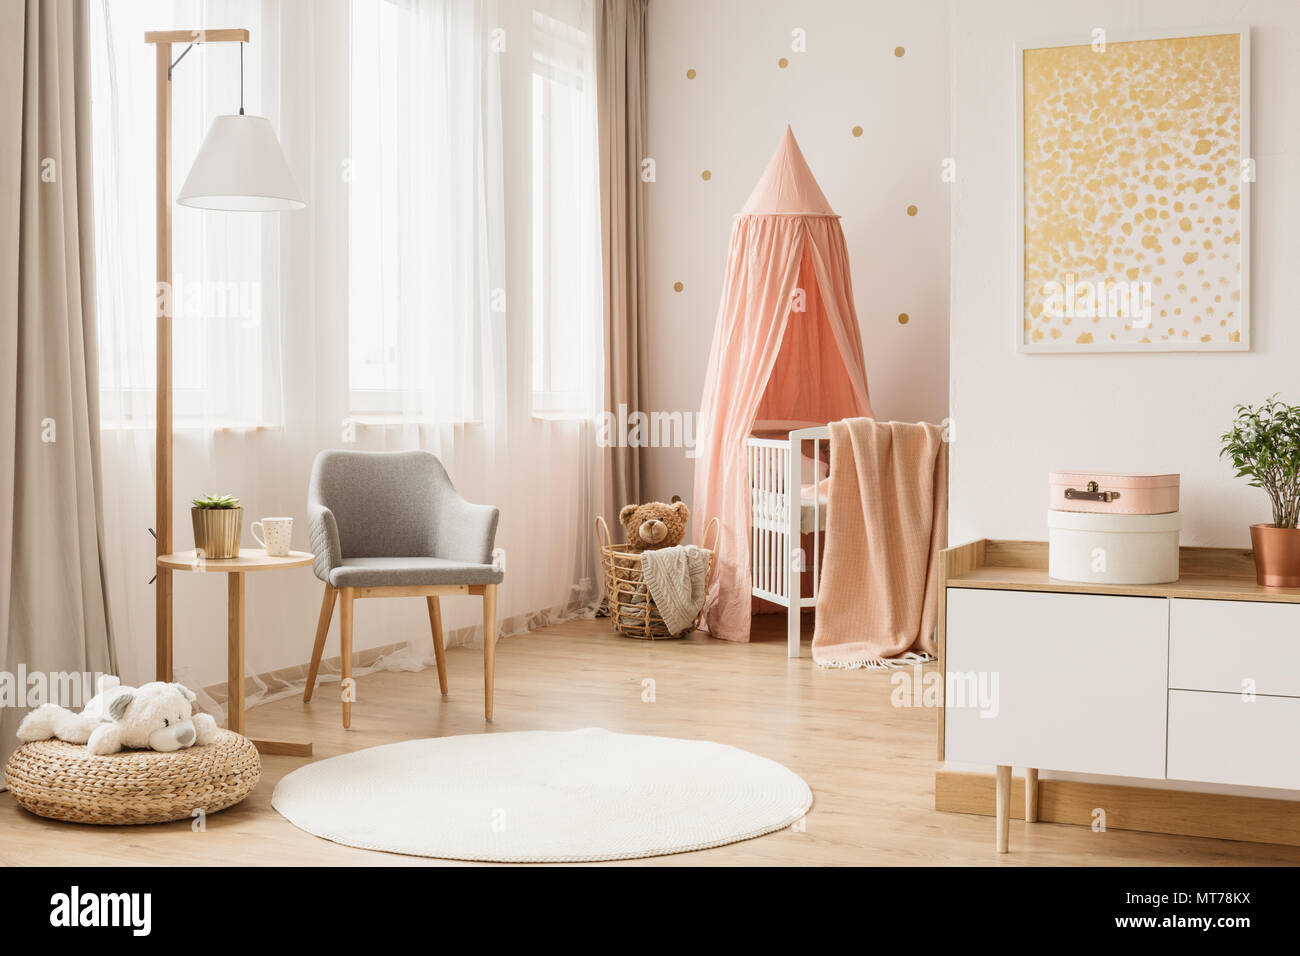 White Round Rug In Scandi Living Room Interior With Babyu0027s Cradle And Gold  Poster Above Cupboard